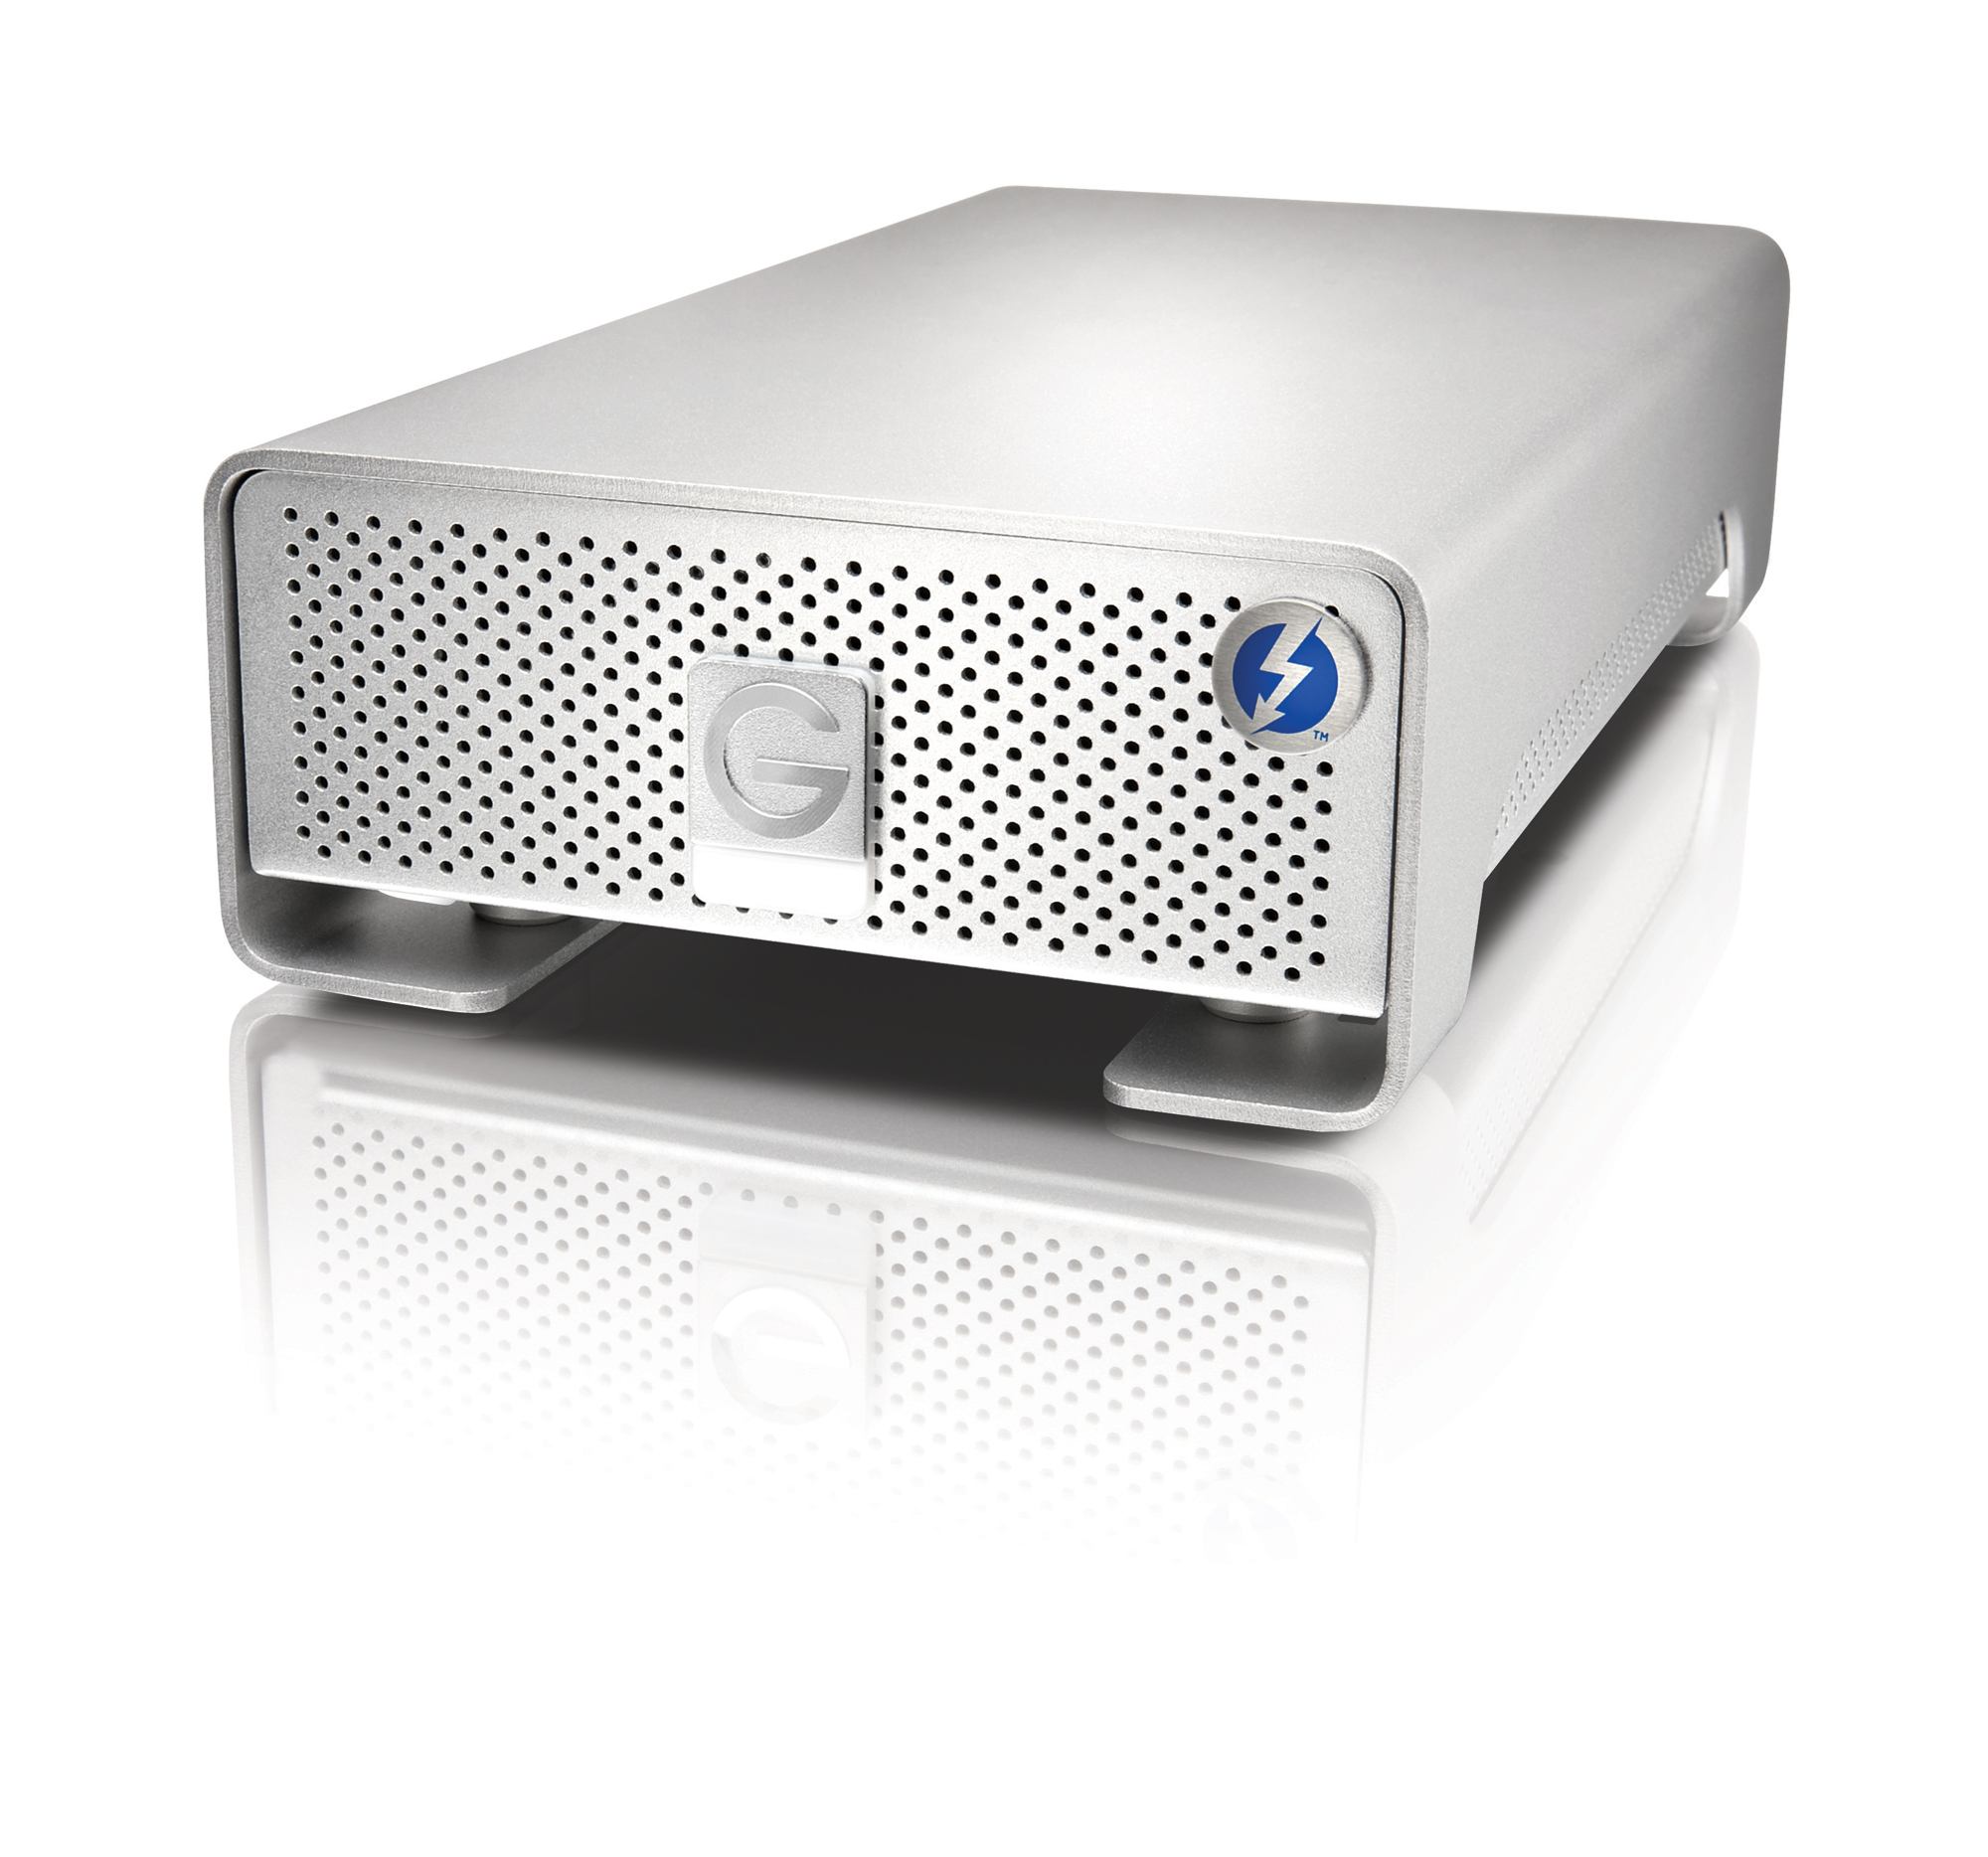 G-DRIVE with Thunderbolt 4TB